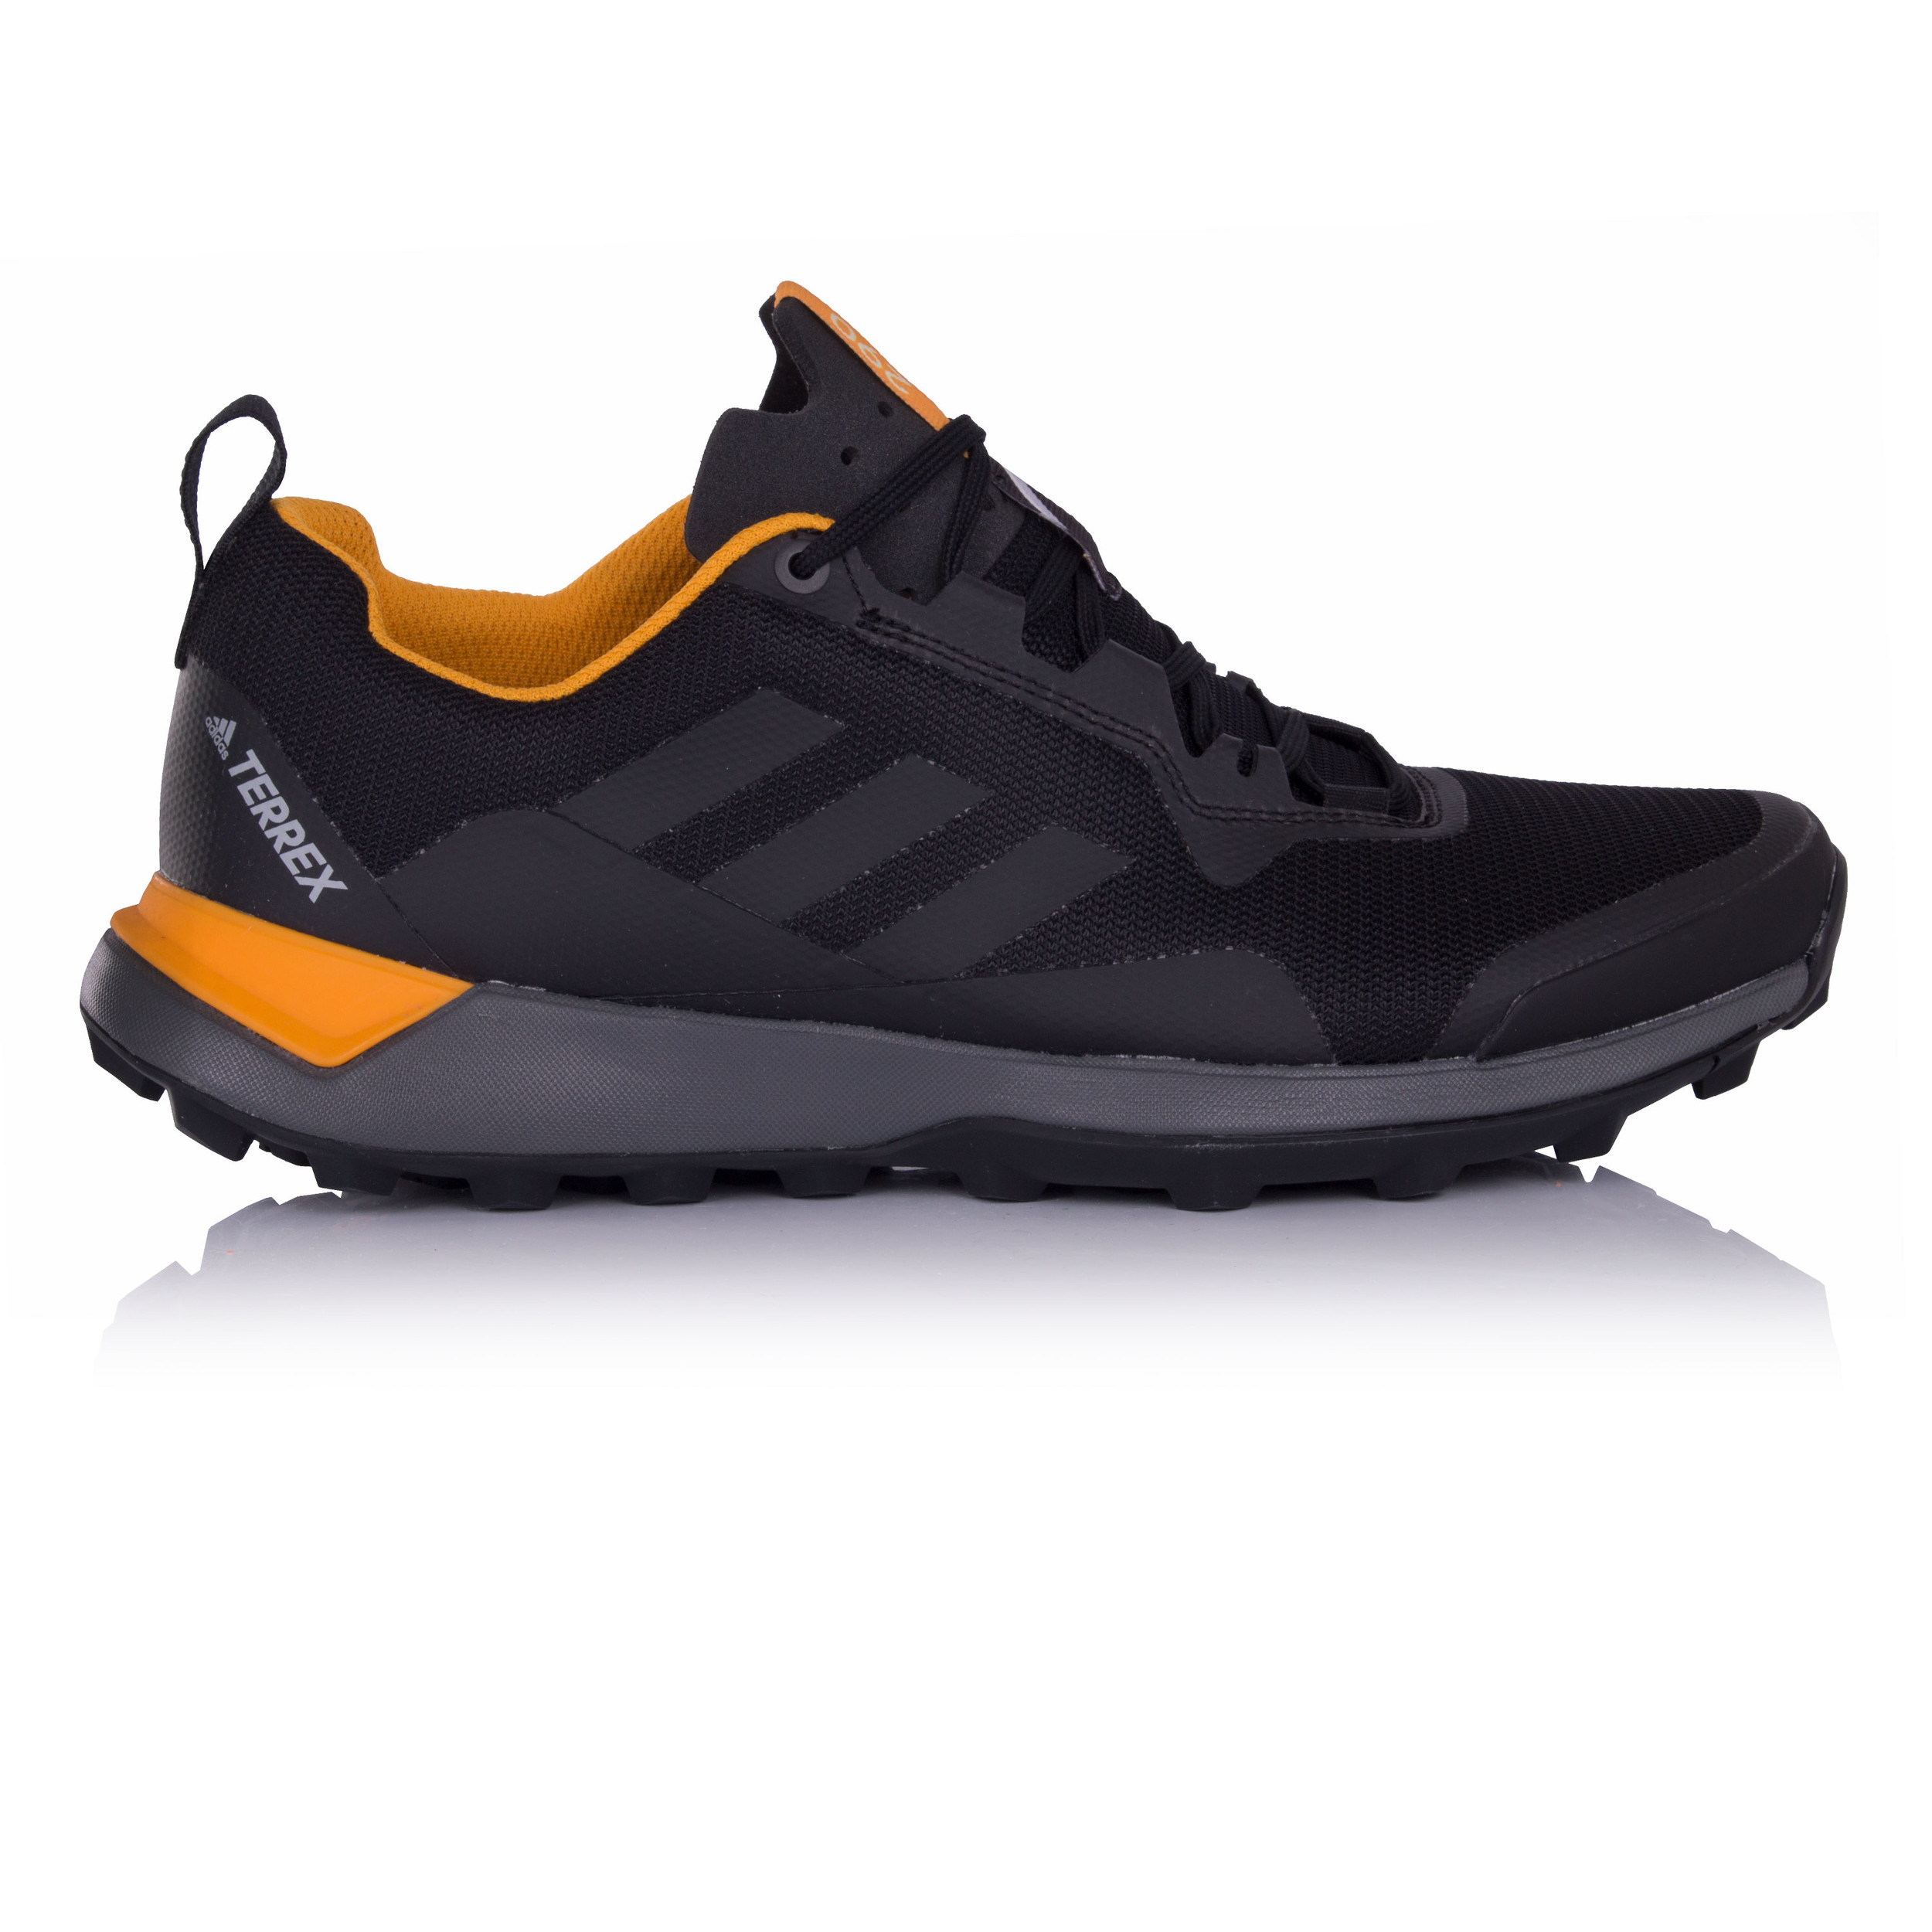 reputable site 2fb6a b06e2 Details about adidas Mens Terrex CMTK Trail Running Sports Shoes Trainers  Footwear Black